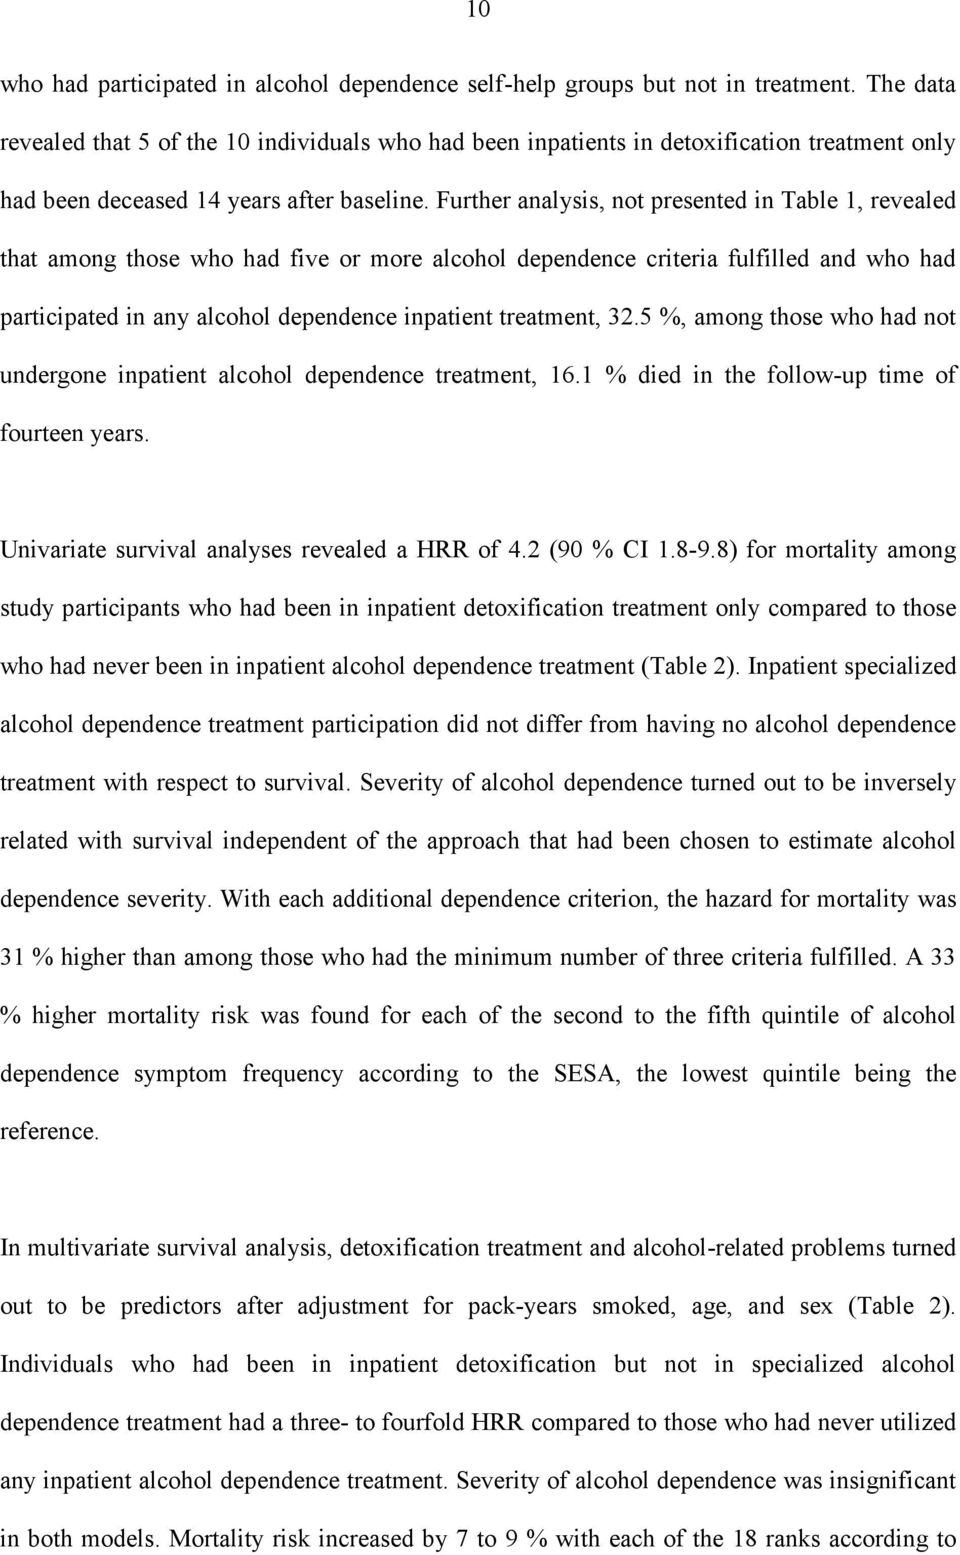 Further analysis, not presented in Table 1, revealed that among those who had five or more alcohol dependence criteria fulfilled and who had participated in any alcohol dependence inpatient